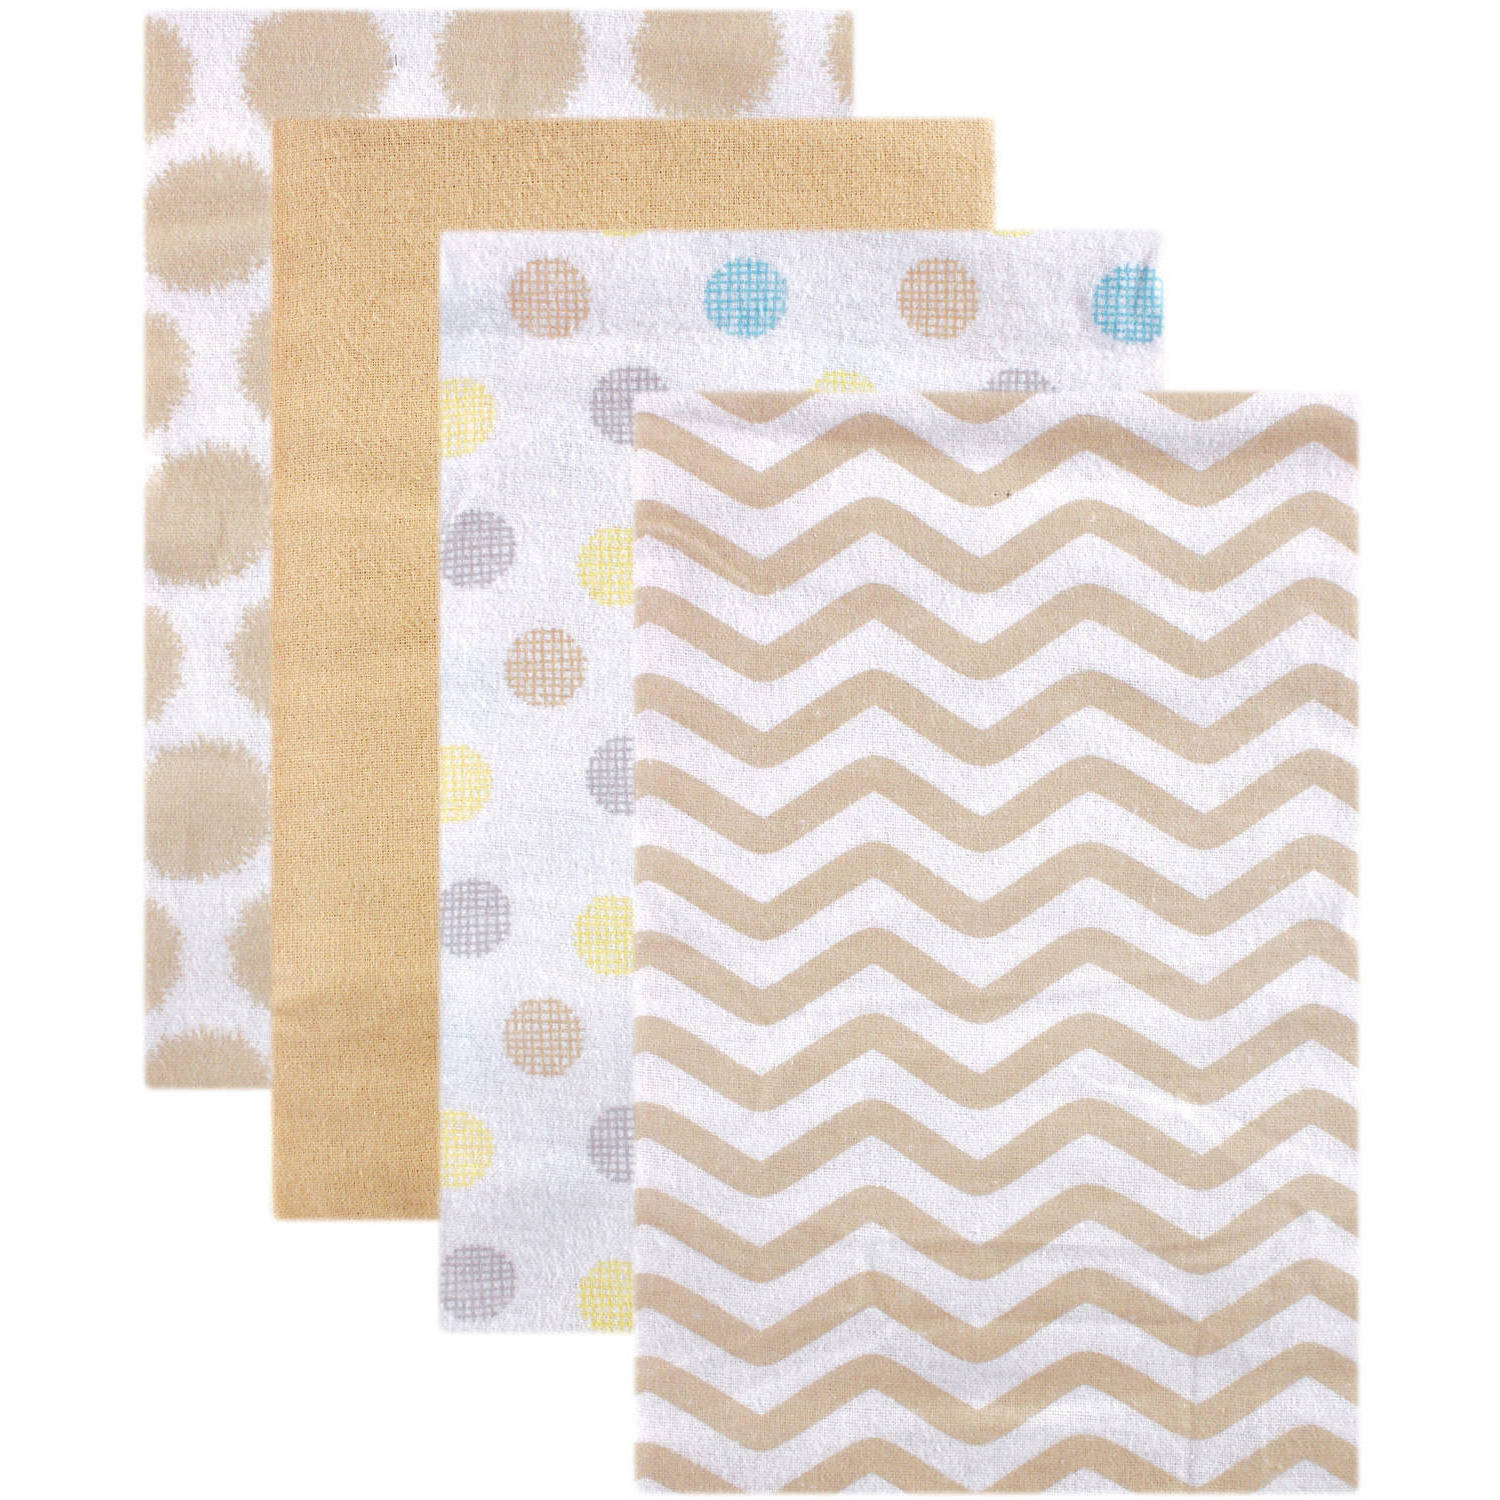 Luvable Friends Receiving Blankets Flannel, 4pk, Tan Dots